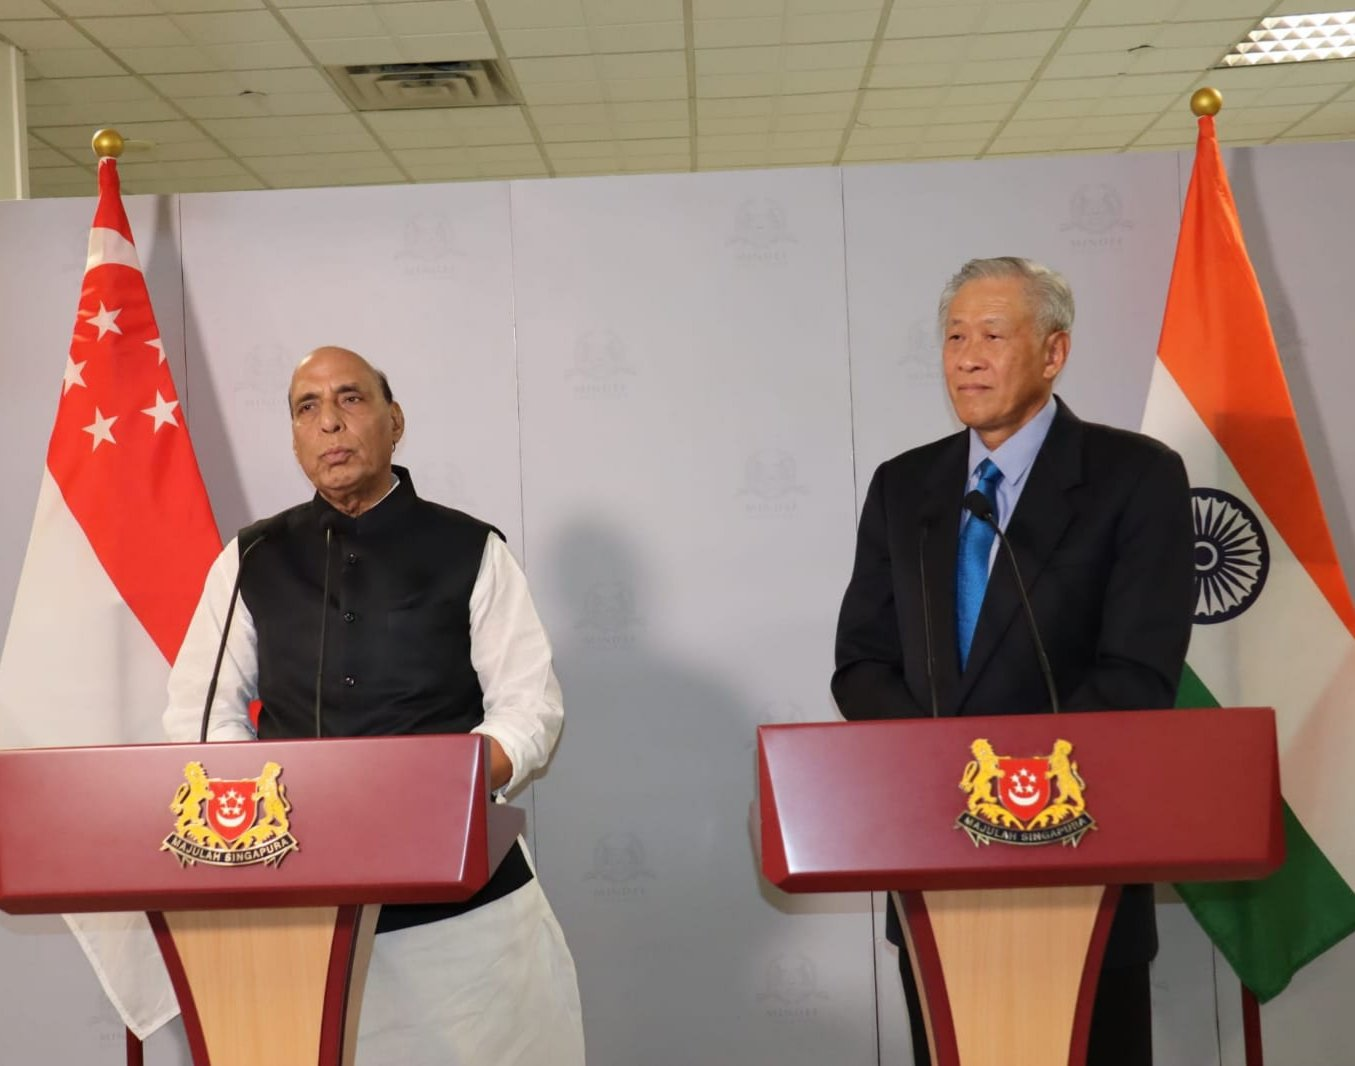 Rajnath Singh and Singapore Defence Minister Dr Ng Eng Hen delivering a joint statement following the 4th Defence Ministers' Dialogue between India and Singapore. Photo courtesy: Facebook/Rajnath Singh